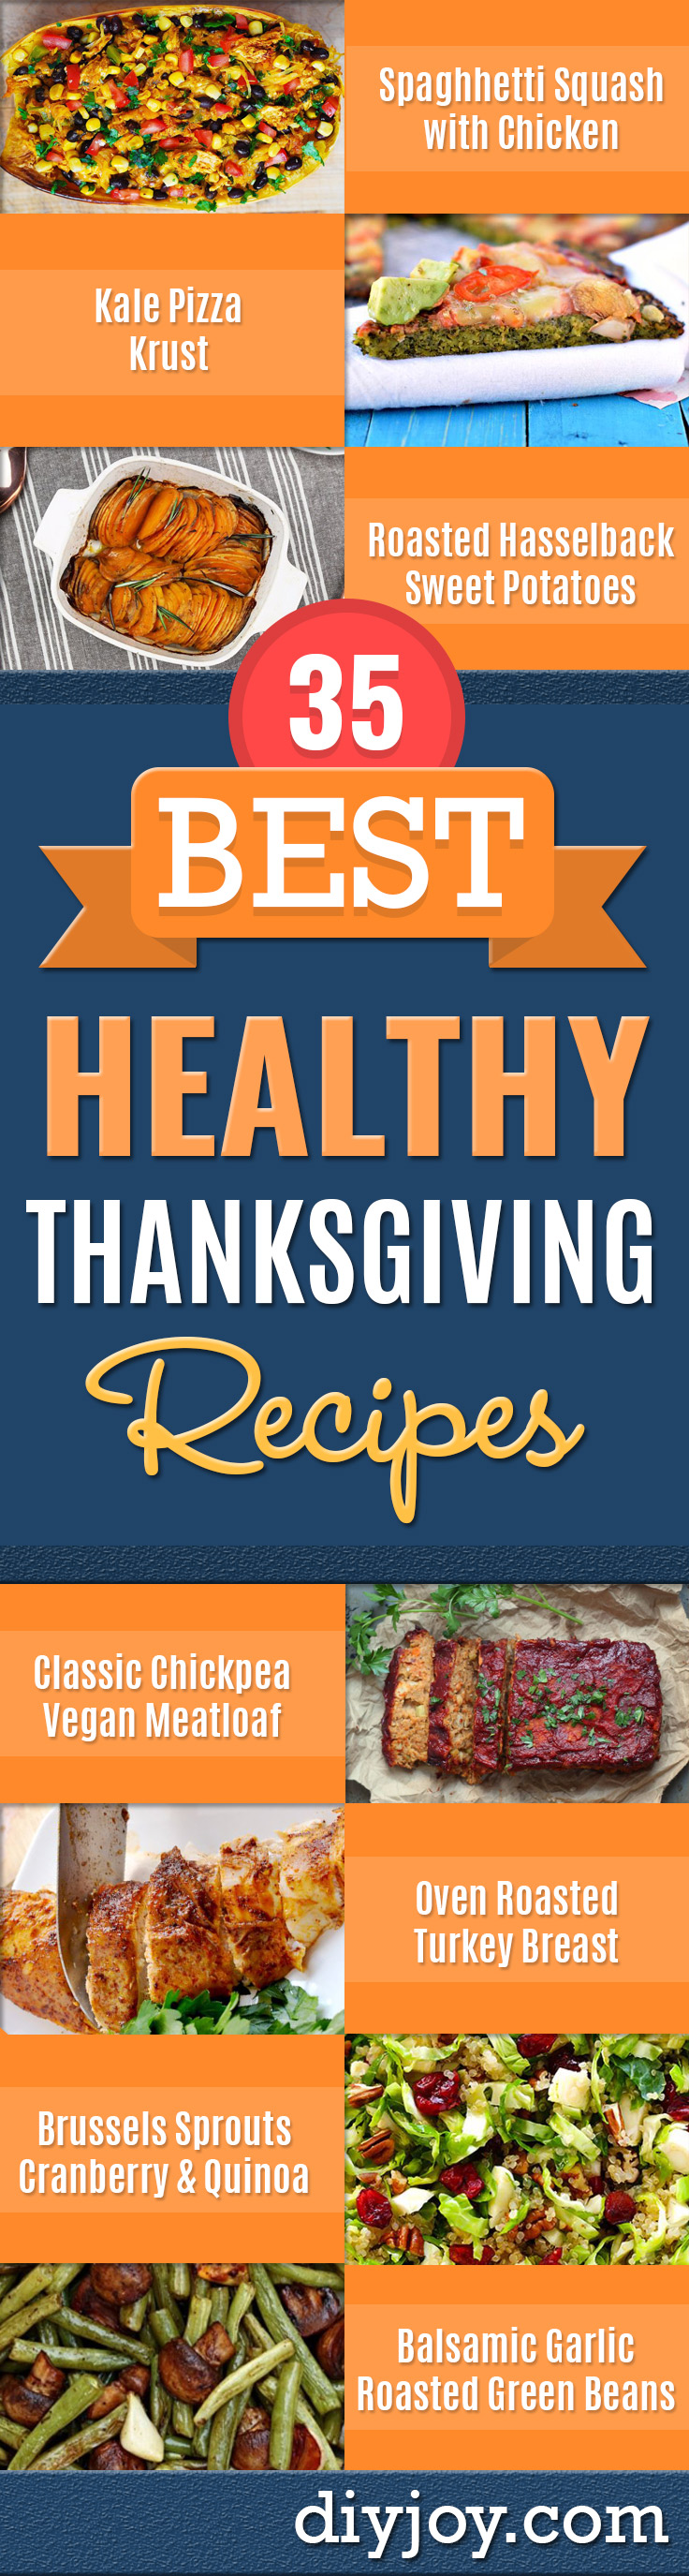 Healthy Thanksgiving Recipes - Low fat Versions of Your Favorite Holiday Recipe for Turkey, Stuffing, Gravy, Pie and Desserts, Appetizers, Vegetables and Side Dishes like Spinach, Broccoli, Cranberries, Mashed Potatoes, Sweet Potatoes and Green Beans - Easy and Quick Last Minute Thanksgiving Recipes for Low Carb, Low Fat and Clean Eating Diets http://diyjoy.com/healthy-thanksgiving-recipes